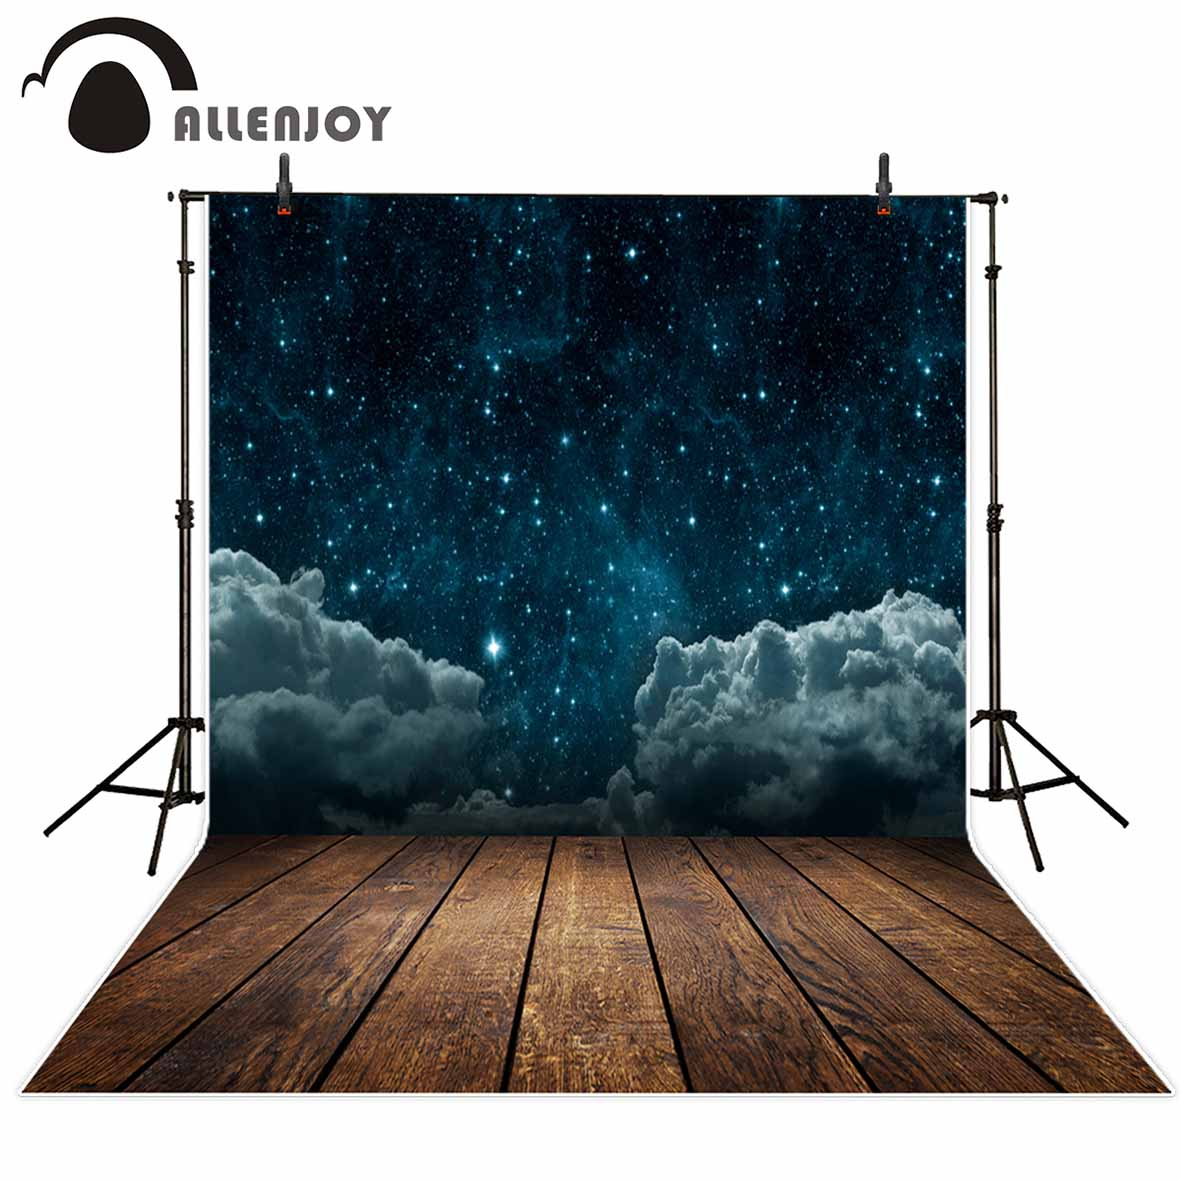 Allenjoy photographic background Night sky clouds stars universe children imagination fantasy backdrop photograph props